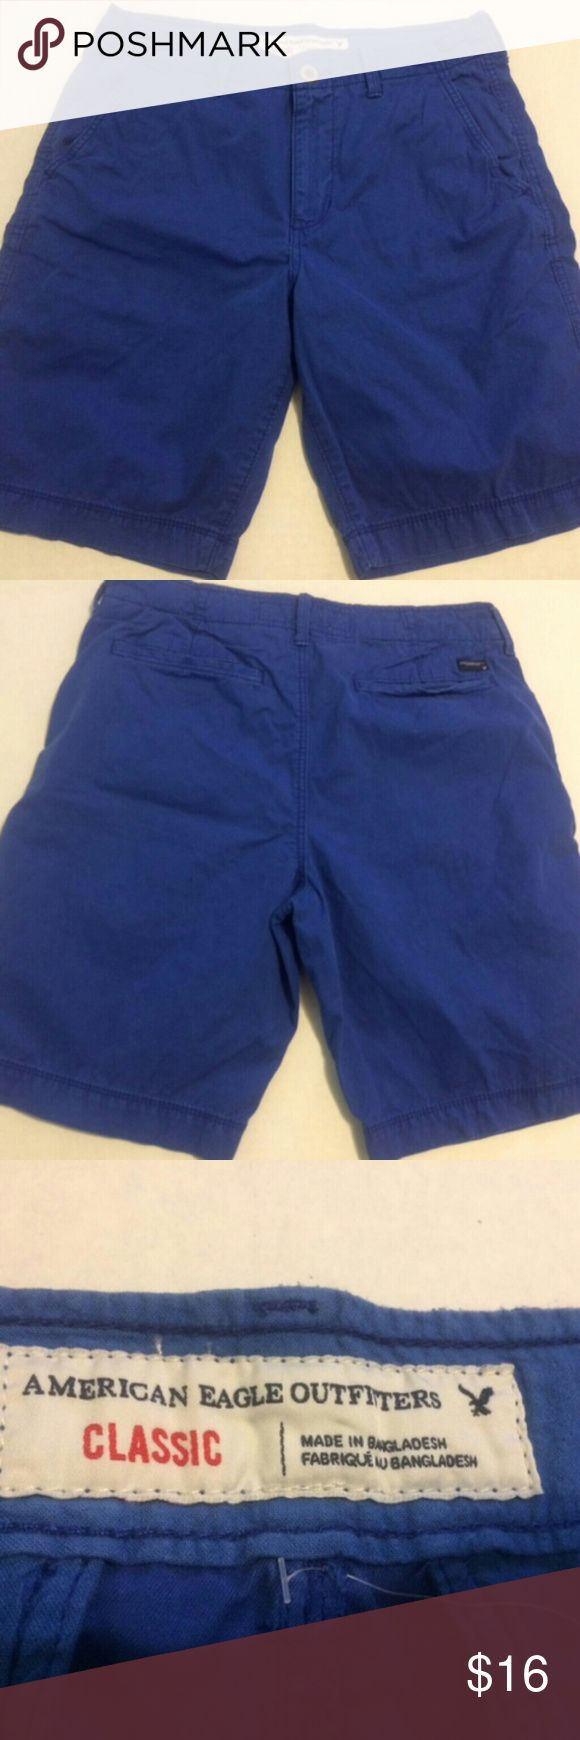 """AMERICAN EAGLE MENS SHORTS AMERICAN EAGLE MENS SHORTS TAG SIZE 32 MEASUREMENTS ARE WAIST33"""" RISE 11.5"""" INSEAM 10"""" VERY NICE PAIR OF SHORTS SMOKE & PET FREE HOME PLEASE LOOK AT ALL PICTURES !!  THANK YOU FOR LOOKING!! AMERICAN EAGLE Shorts"""